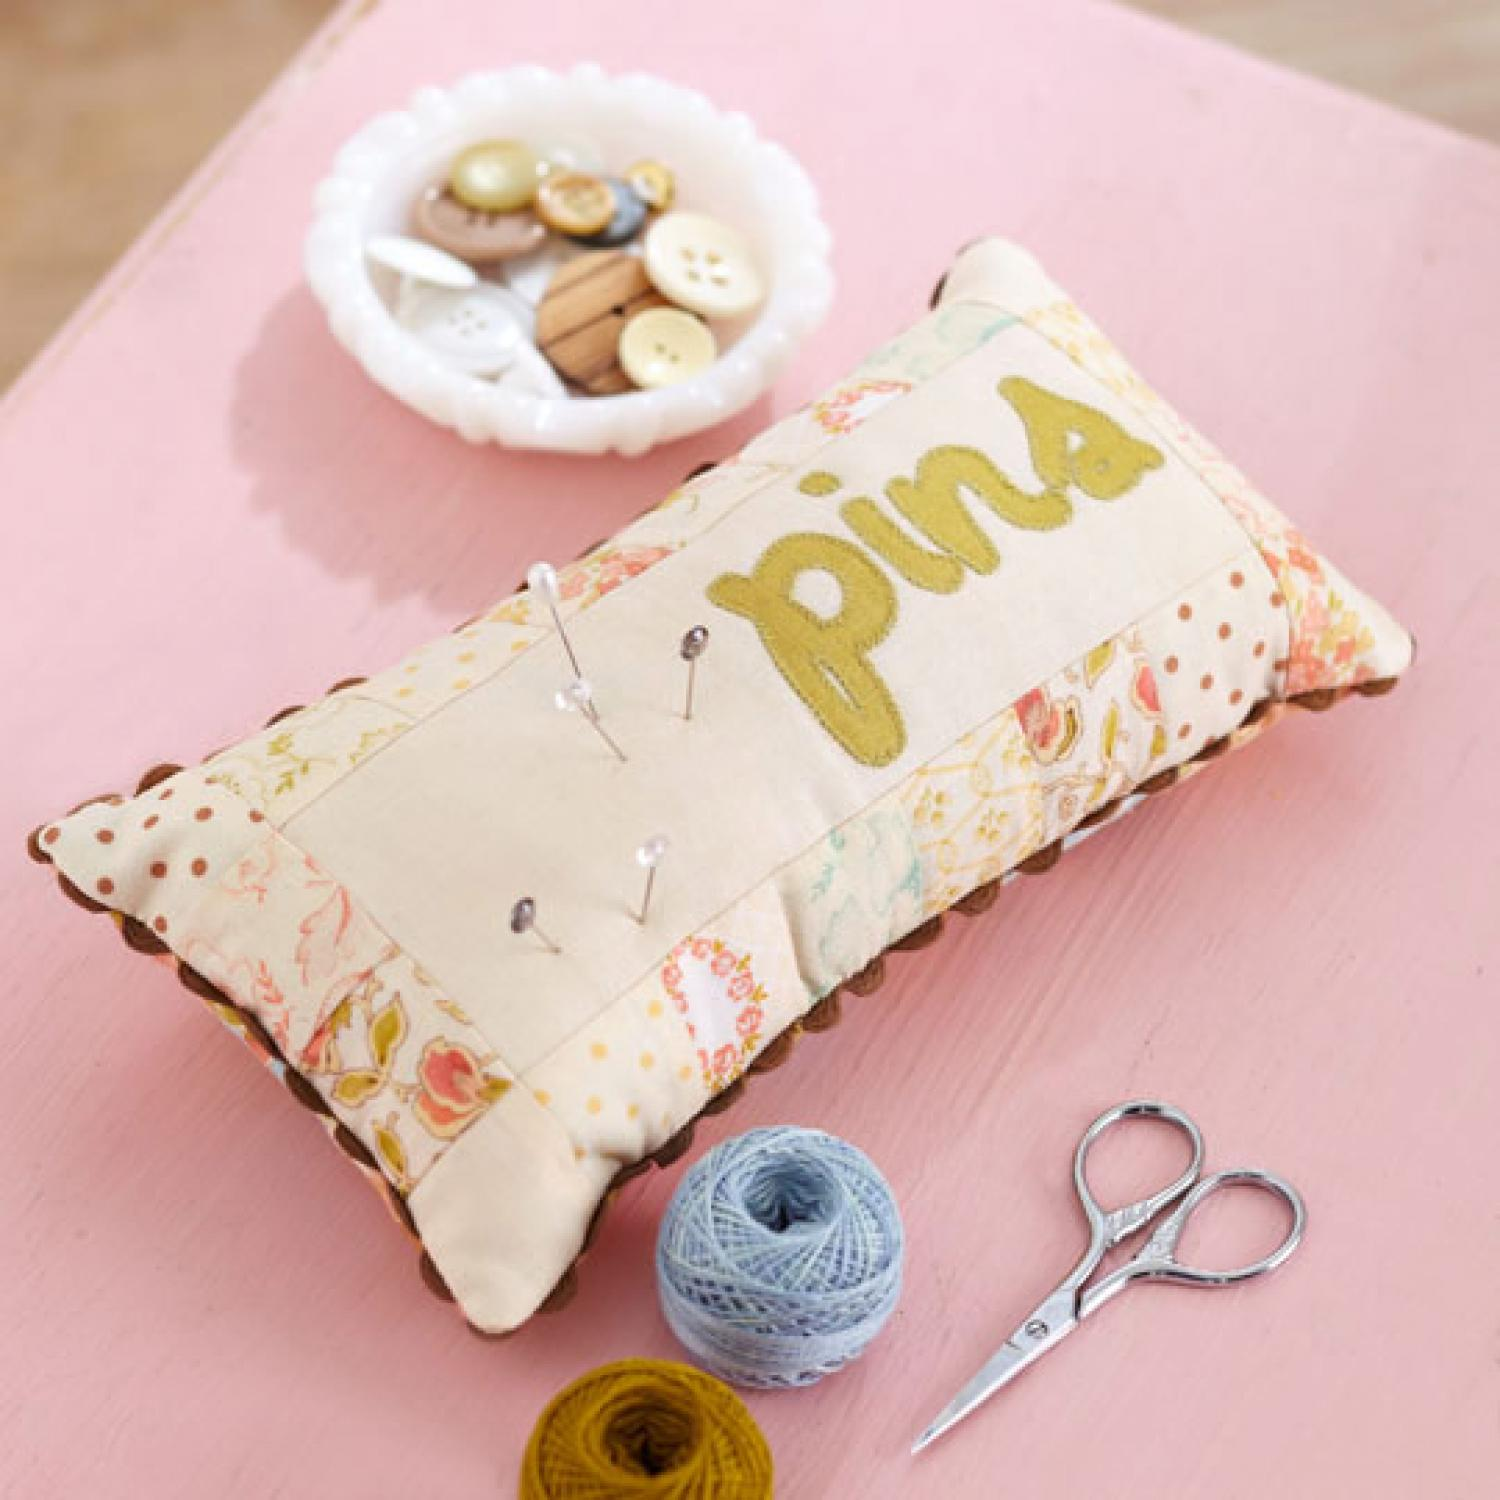 How to Choose and Use Sewing Pins